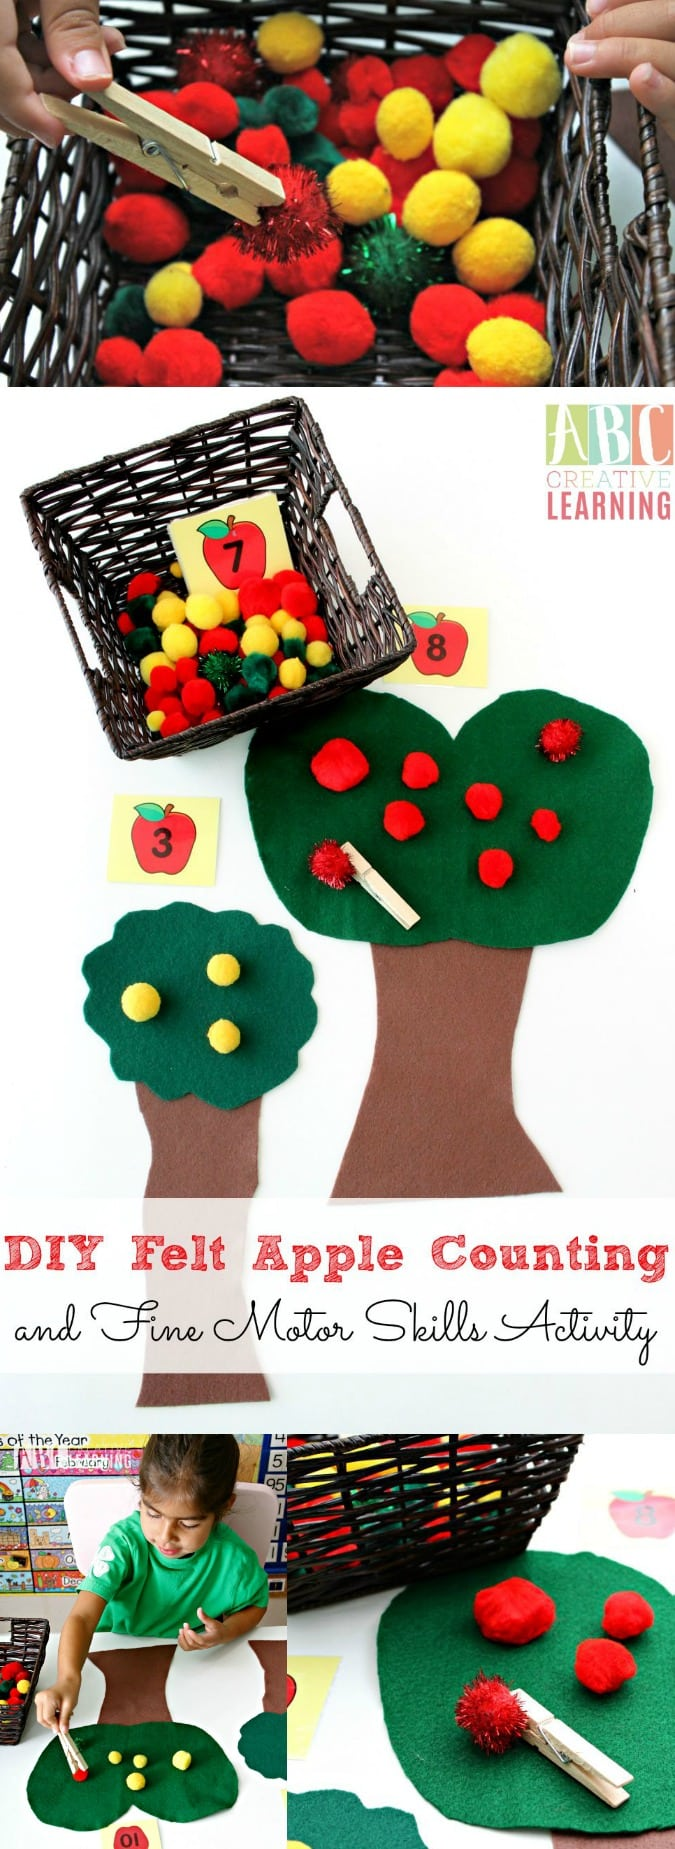 DIY Felt Apple Counting and Fine Motor Skills Activity - simplytodaylife.com